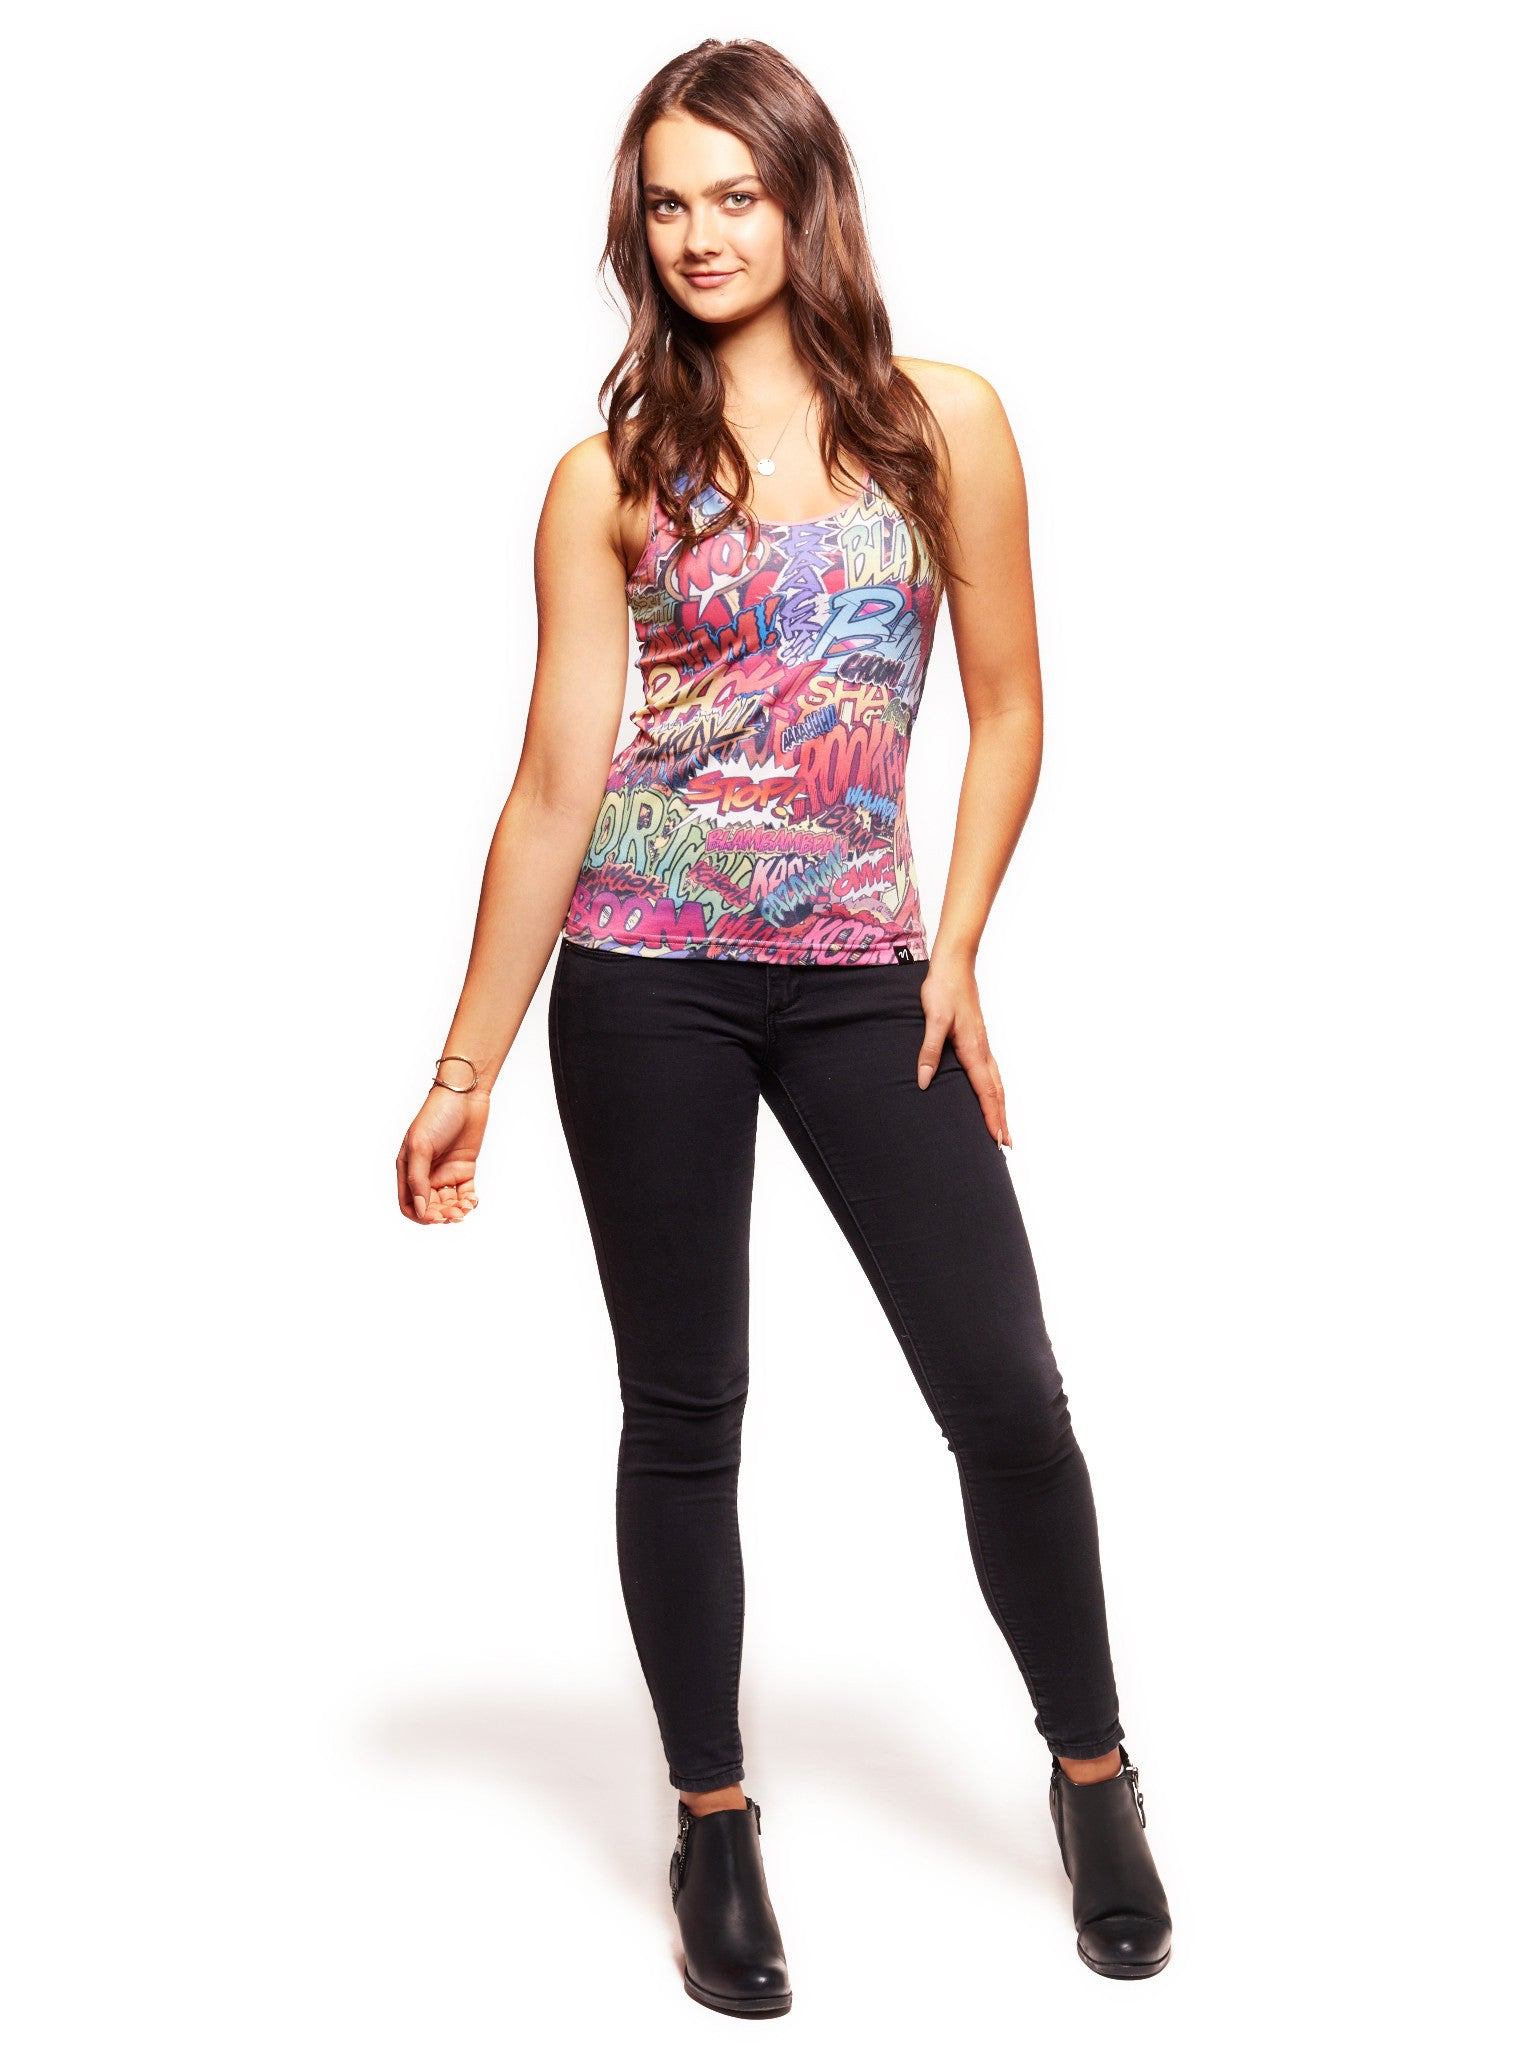 Action Packed Women's Trinity Tank - Nuvango  - 3